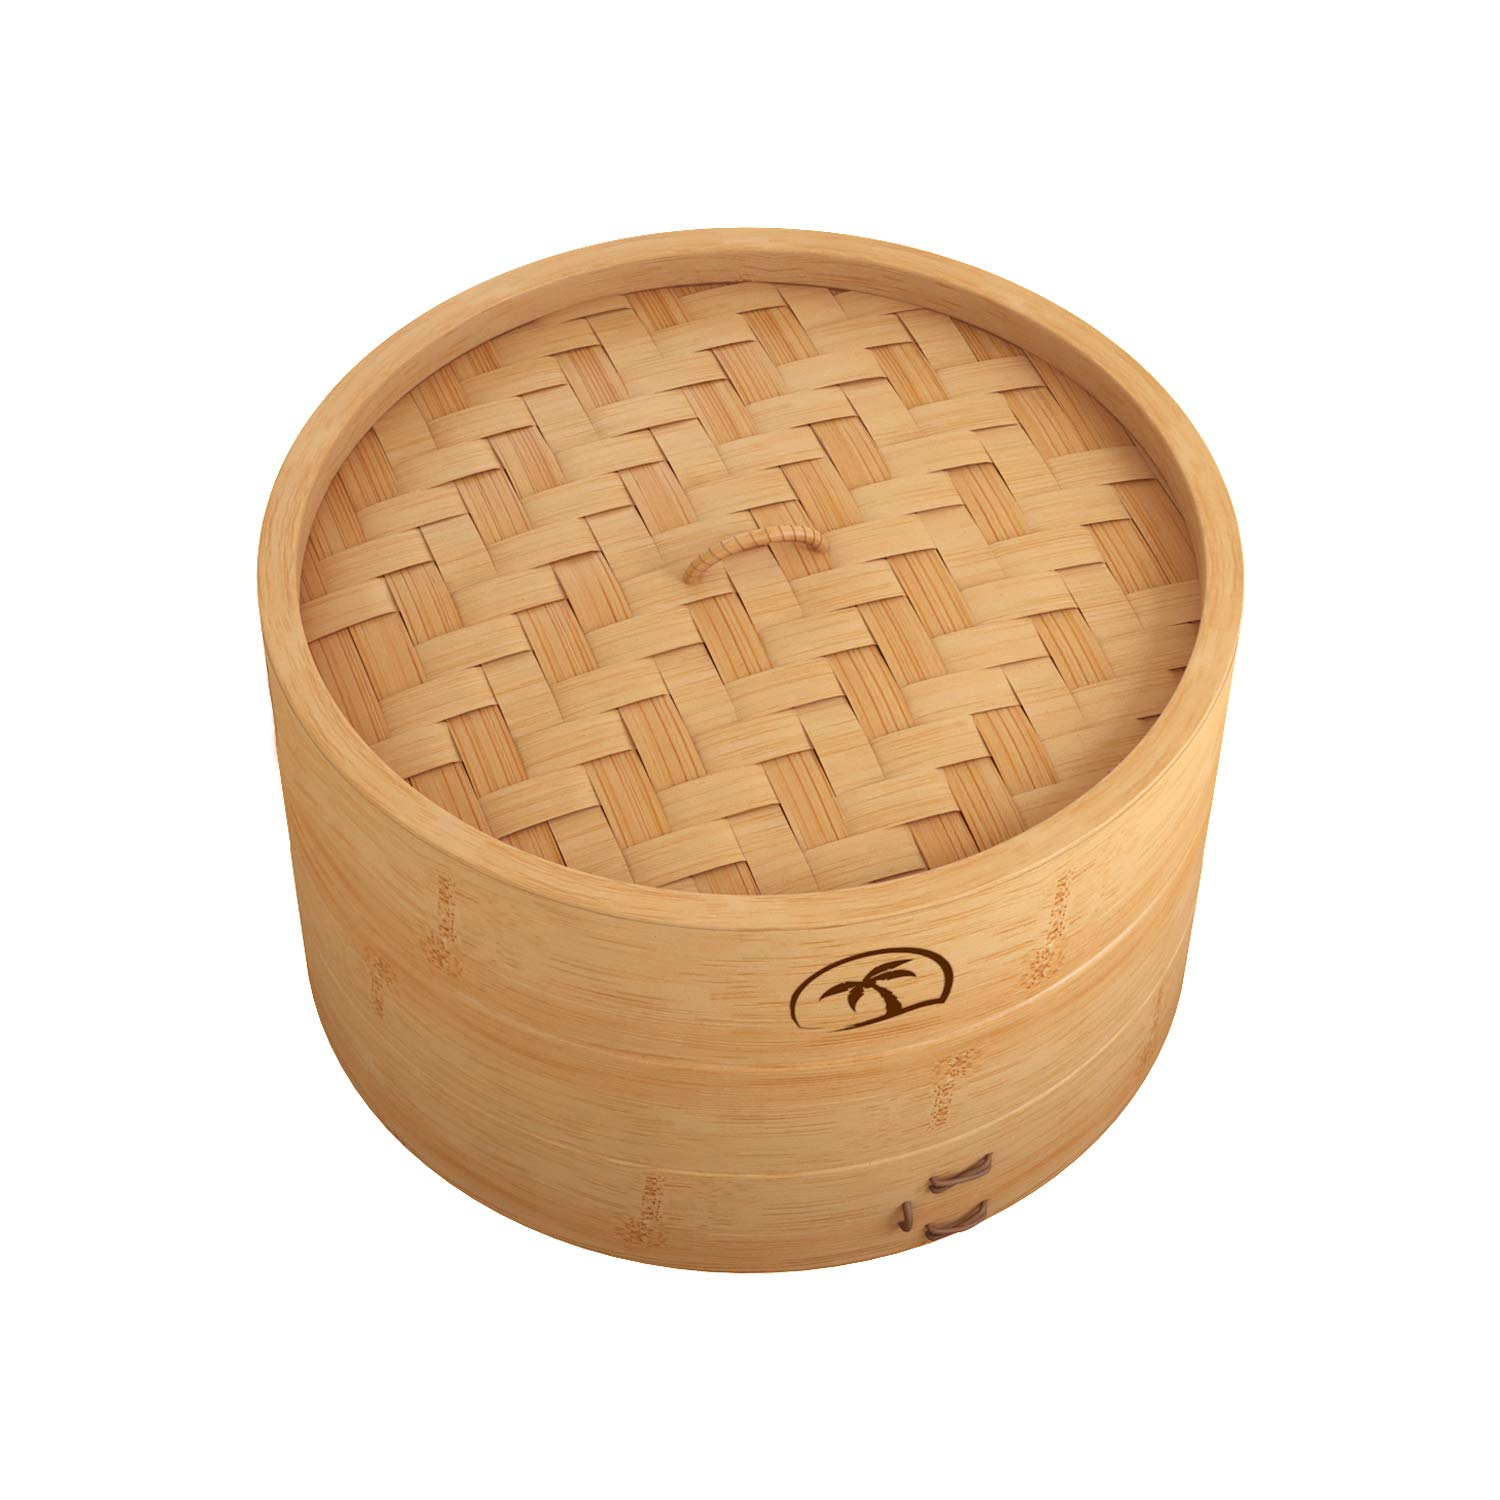 10'' Natural Bamboo Dumpling Steamer 2 Tiers Basket with Lid Includes 50 Wax Papers, 2 Pair of Chopsticks & Instruction Manual - Great for Asian Cooking by Tree Top by Tree Top Dealz